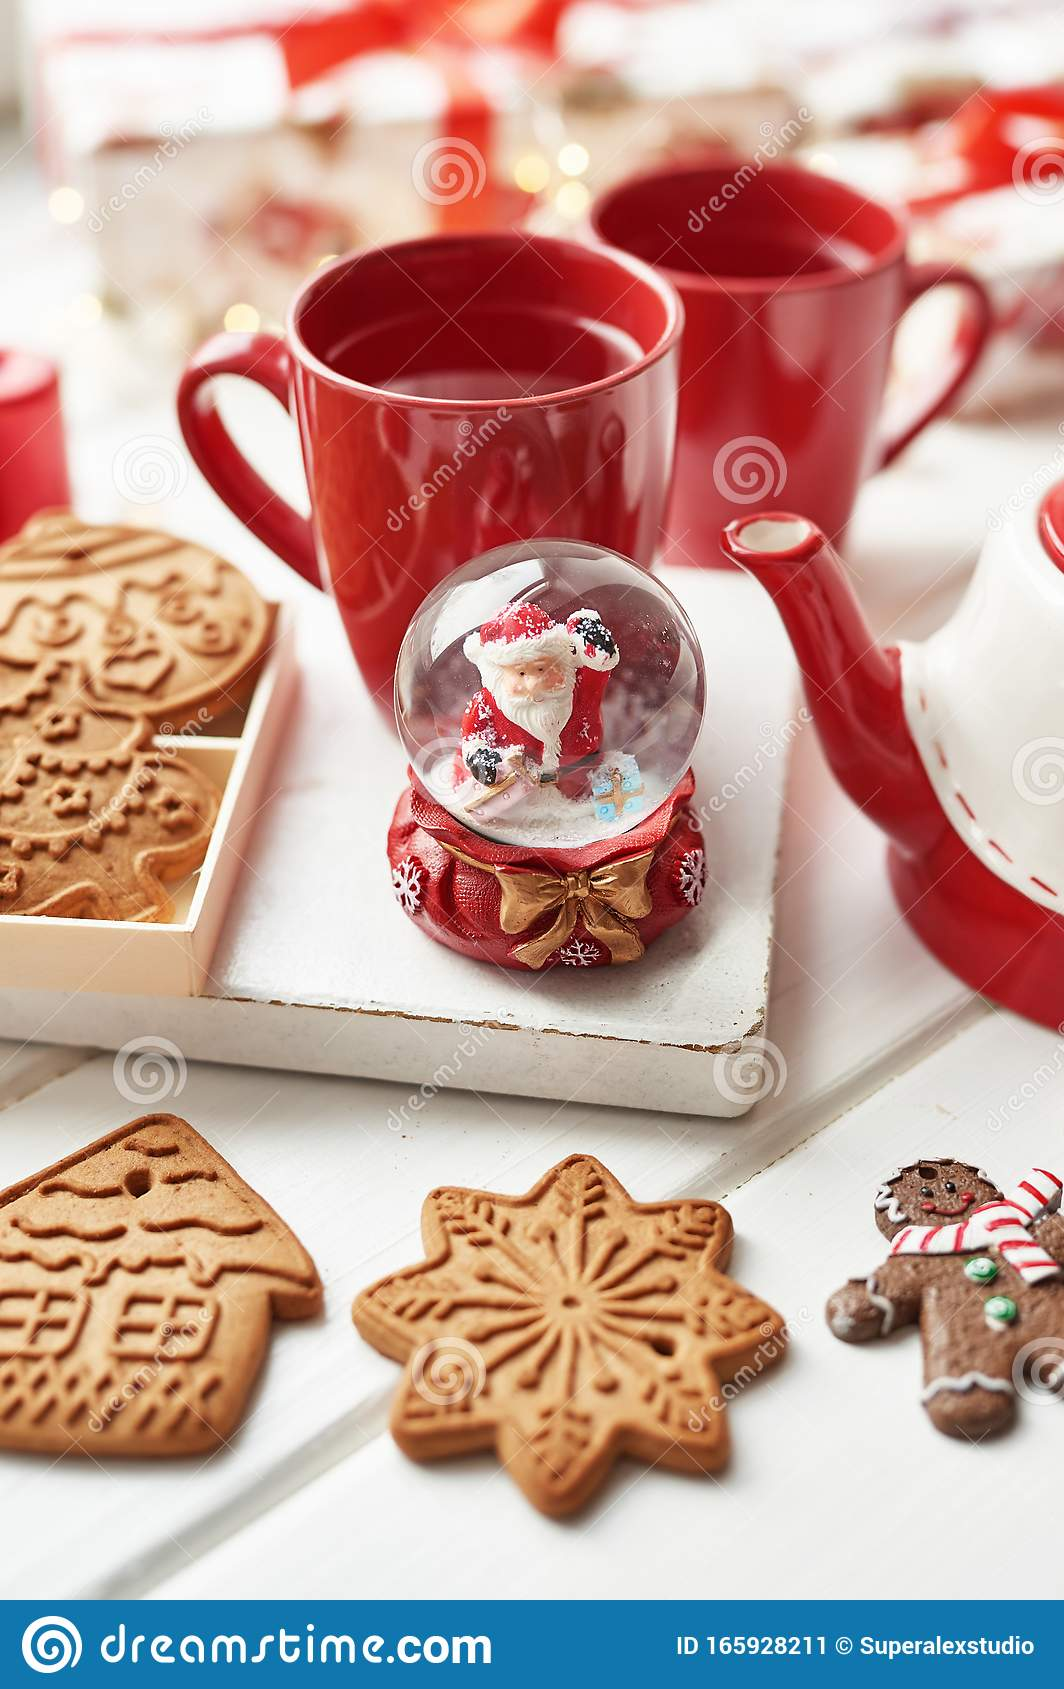 Christmas Cookies And Mug Of Hot Tea Christmas Time Christmas Gingerbread Candy Coffee In Red Cup On Wooden Table On Frosty Stock Image Image Of Cookie Candy 165928211